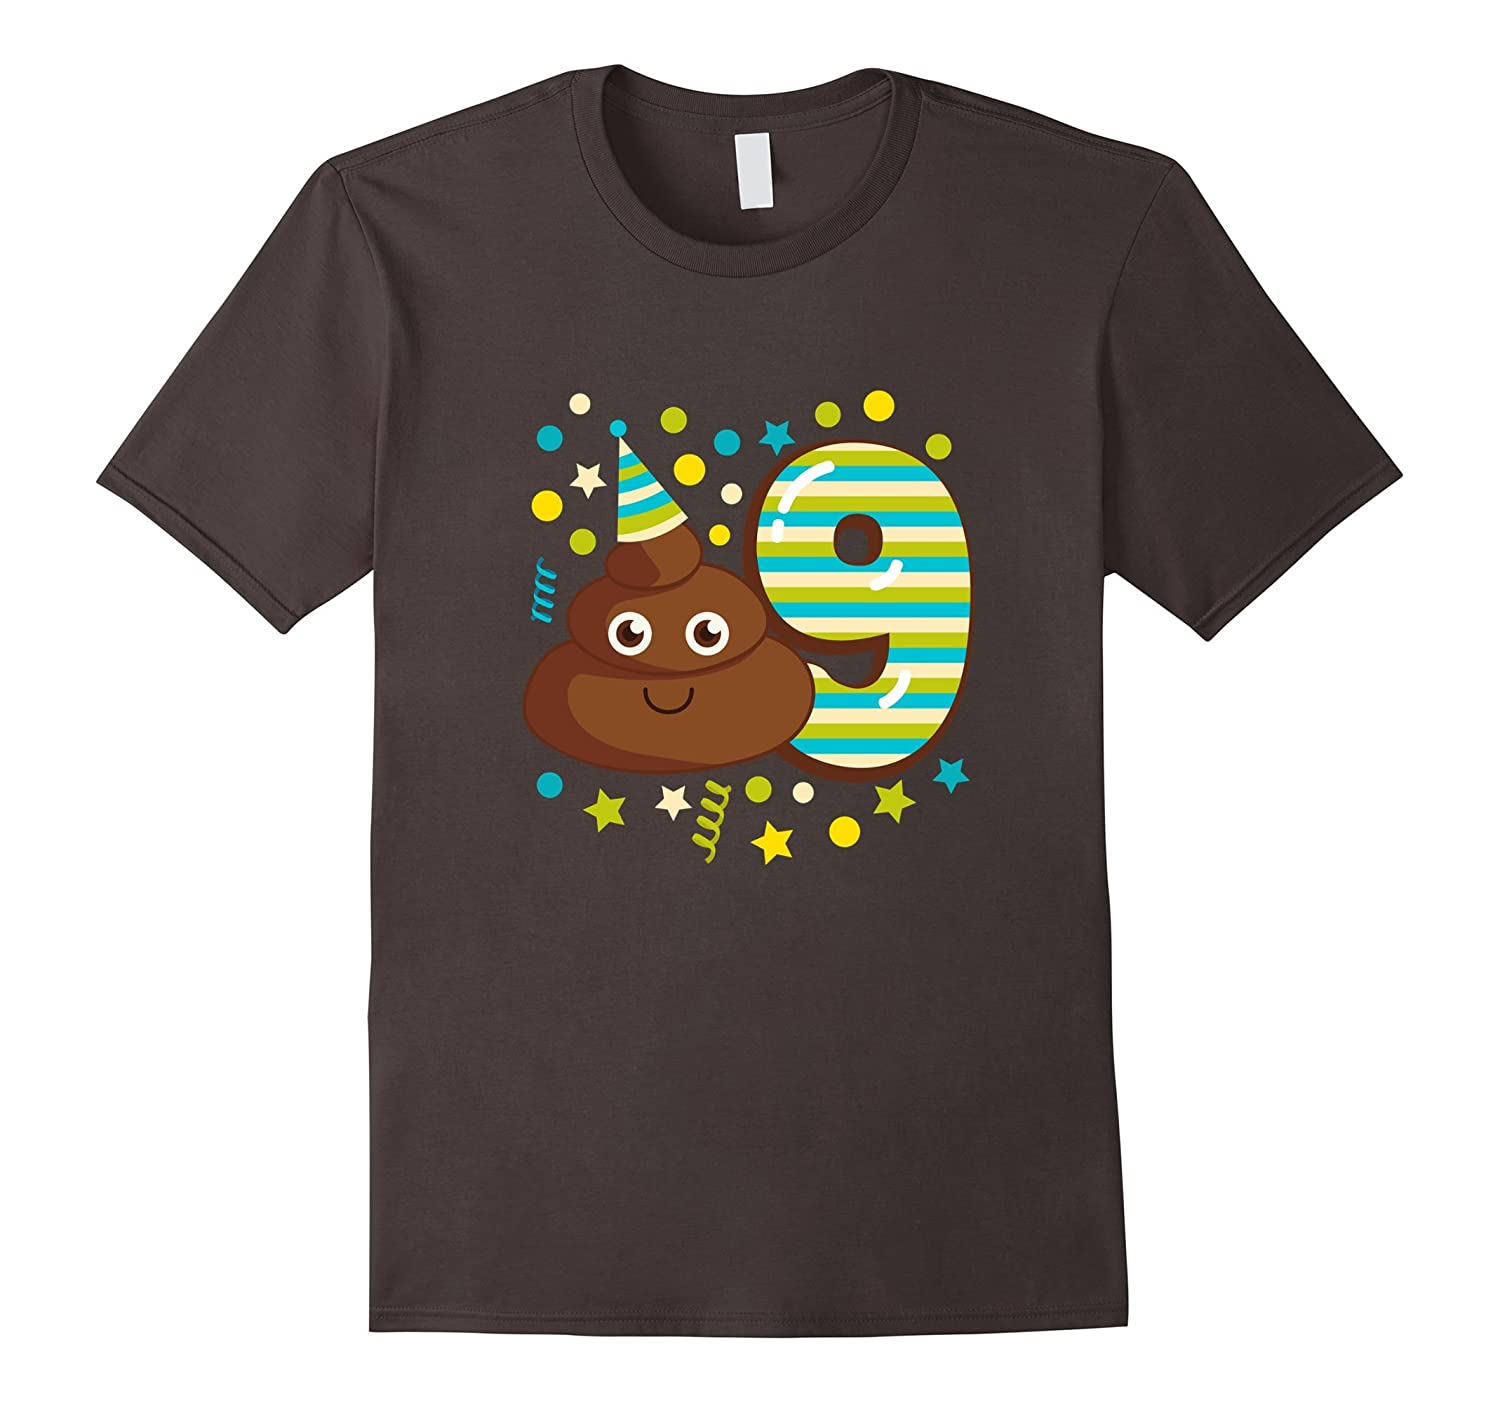 Kids Birthday Parties 9 Year Old Party Shirt Girl Or Boy CD